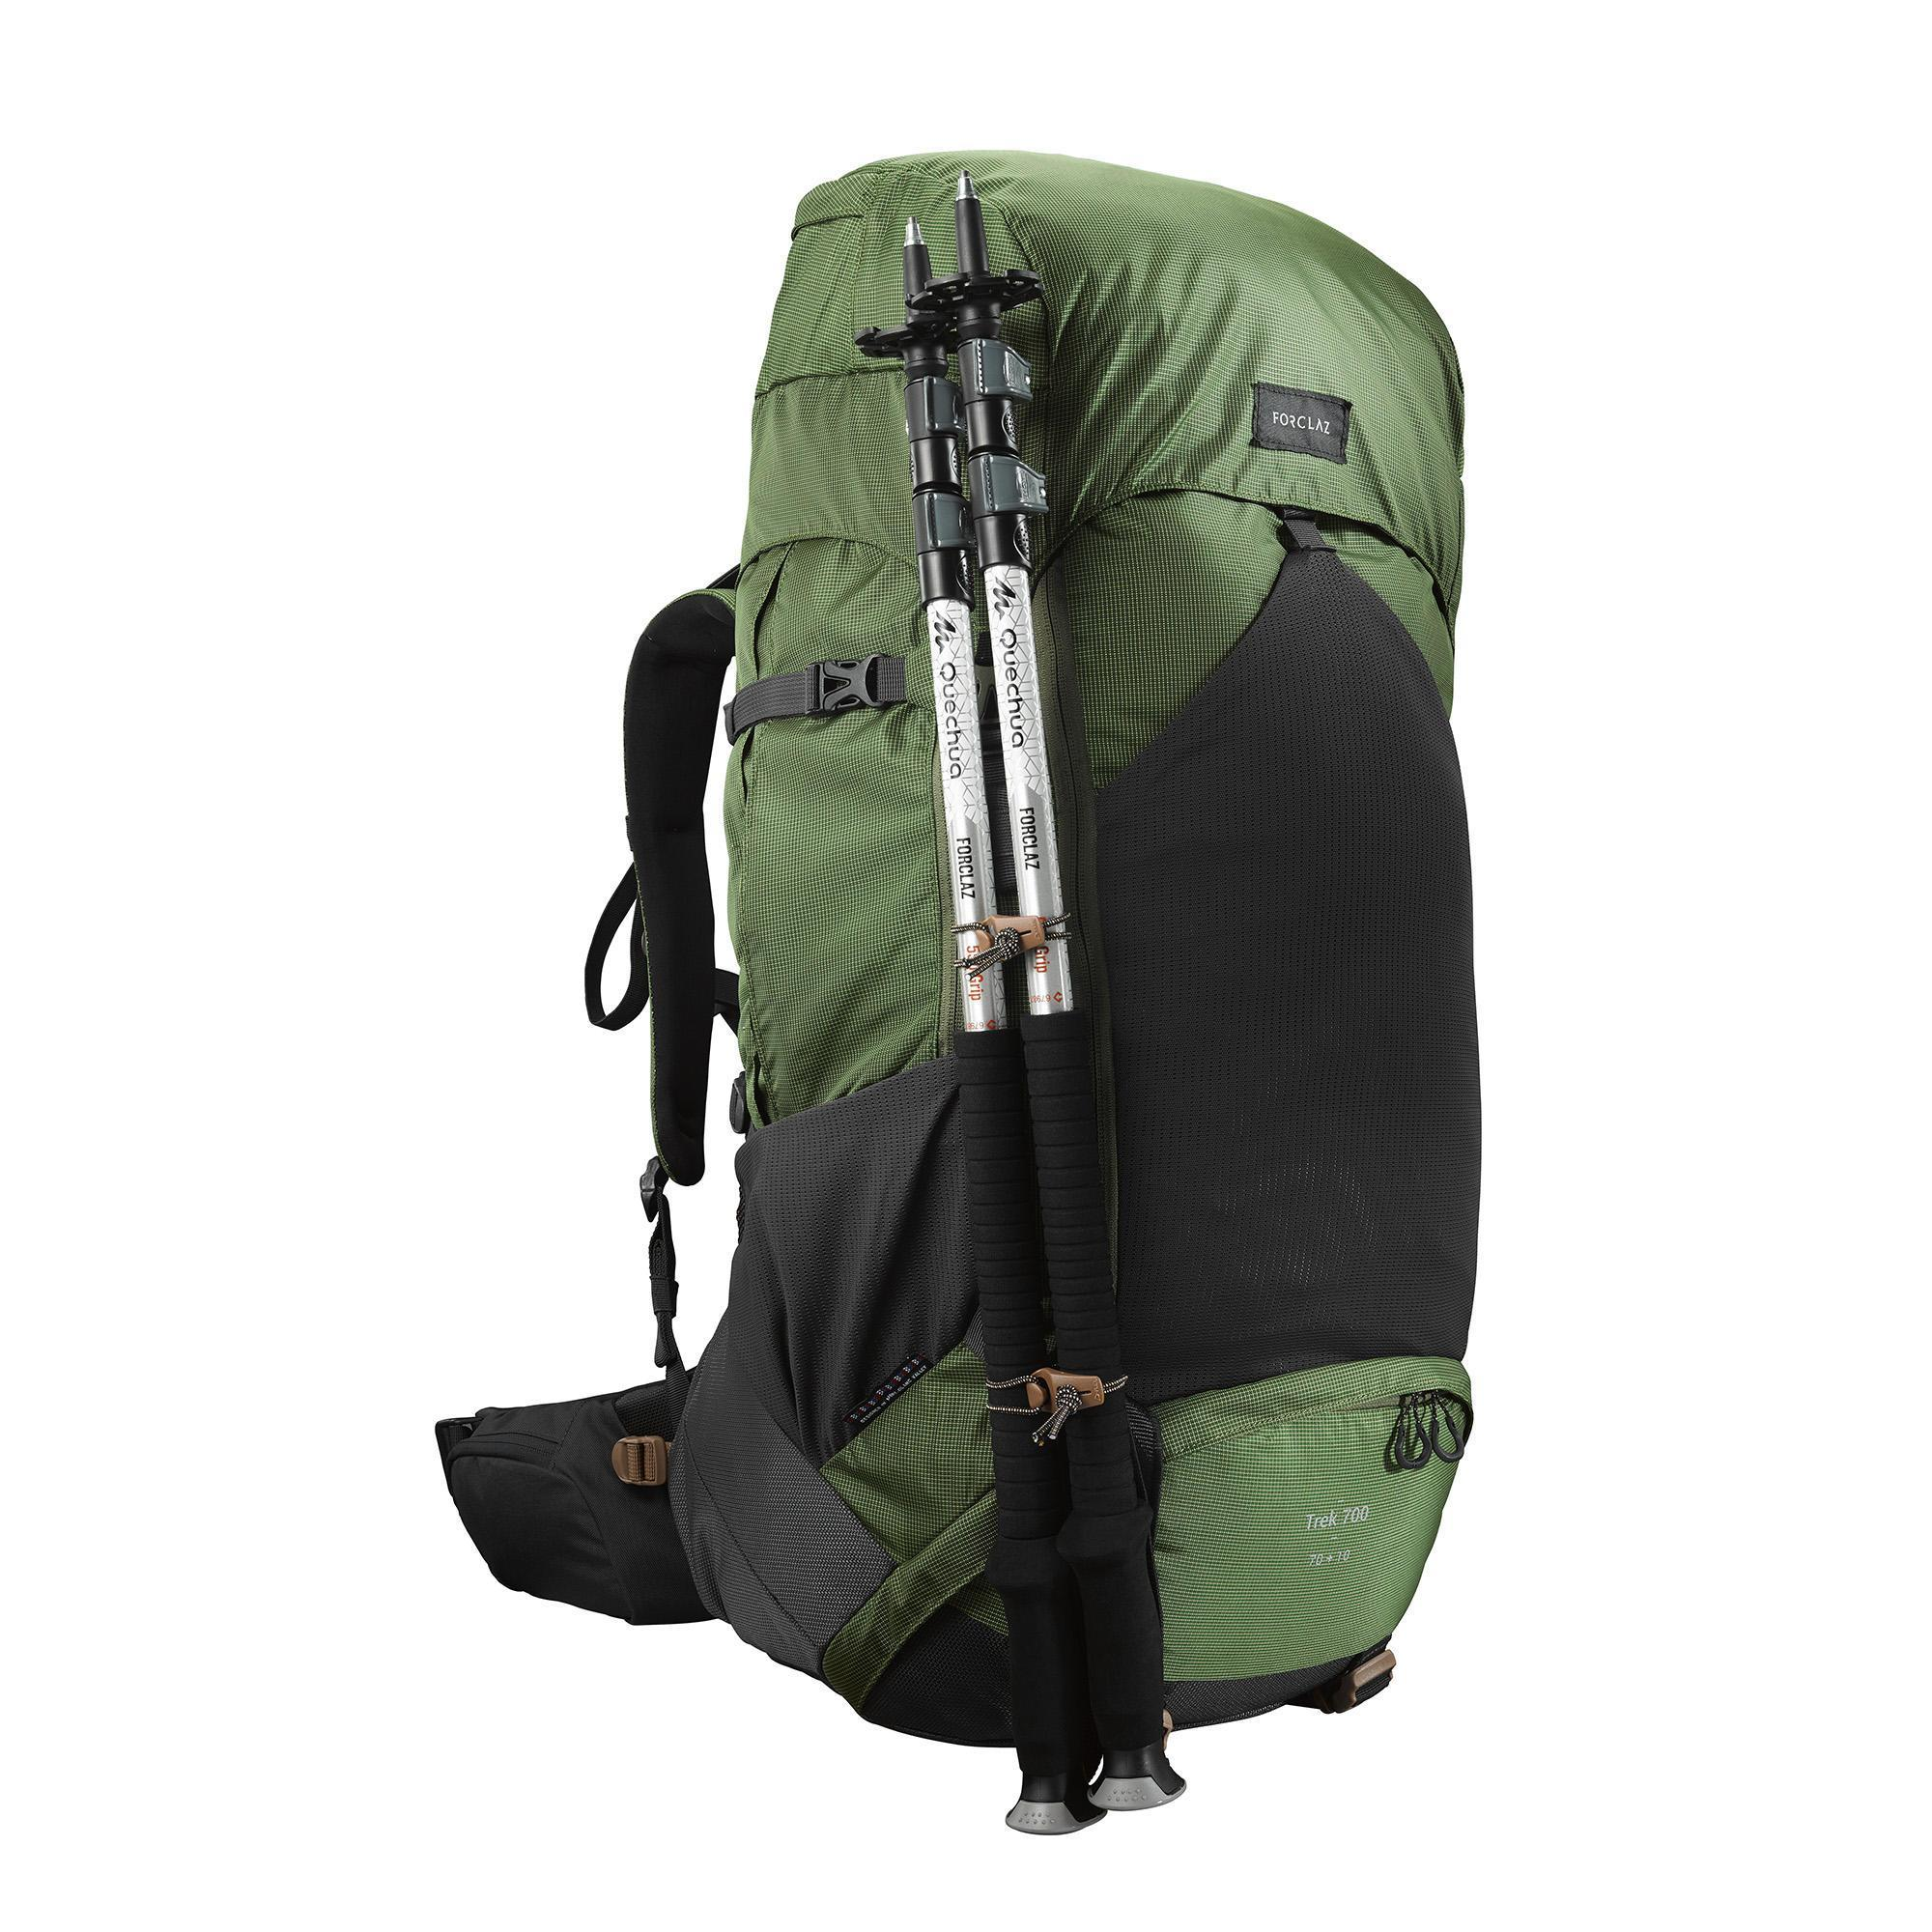 Backpacks TREK 700 70+10 Men s Mountain Backpack - Olive green - Decathlon 4a9461912d2